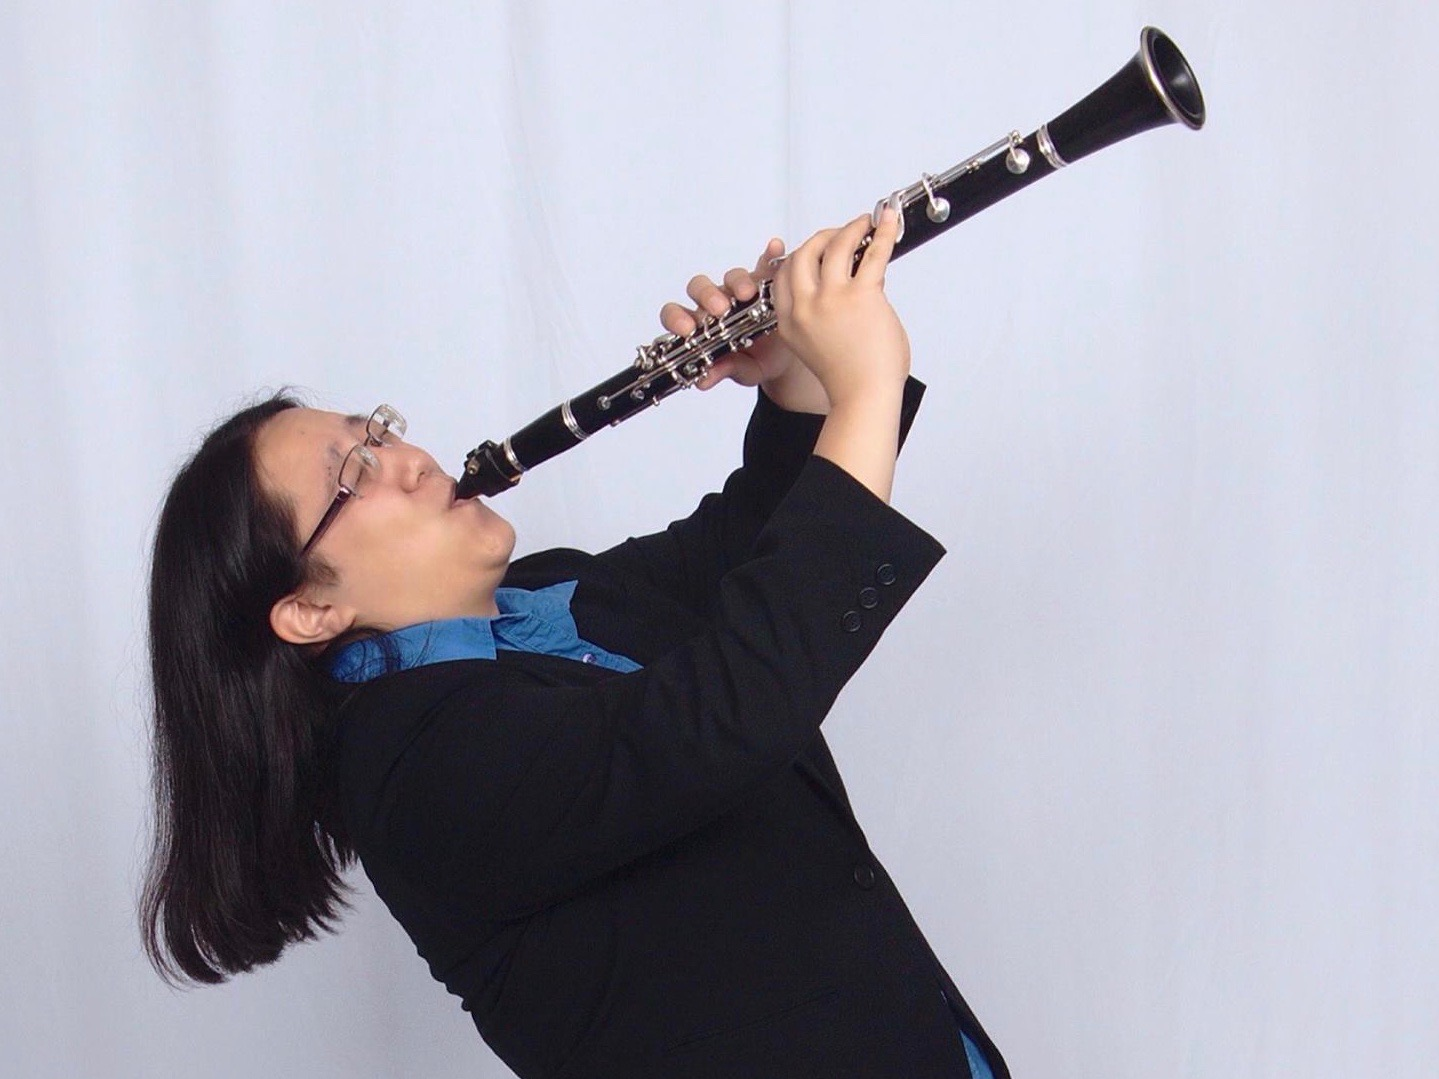 Patricia Crispino plays the clarinet